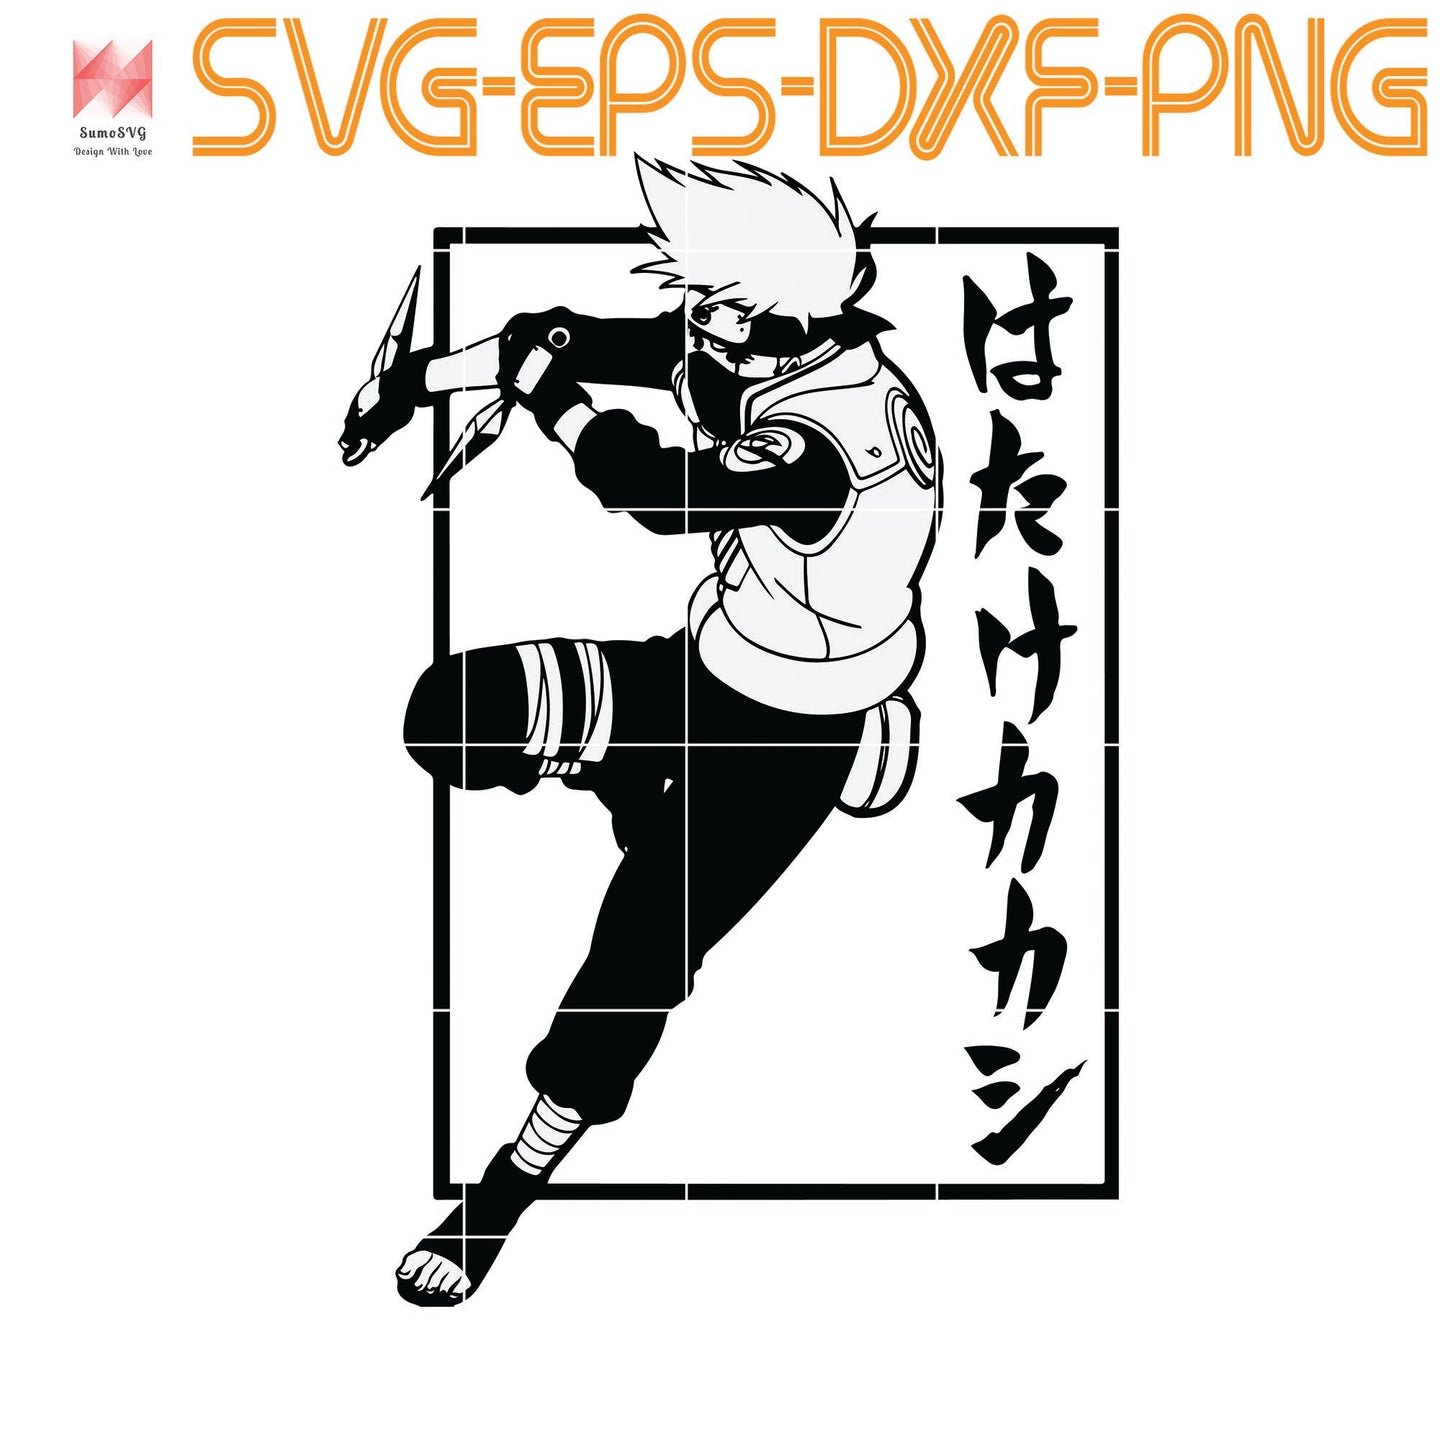 Naruto Shippuden Kakashi with Vertical Kanji, Quotes, Funny Quotes, Cameo, Cricut, Silhouette, SVG, PNG, Eps, DXF, Digital Download